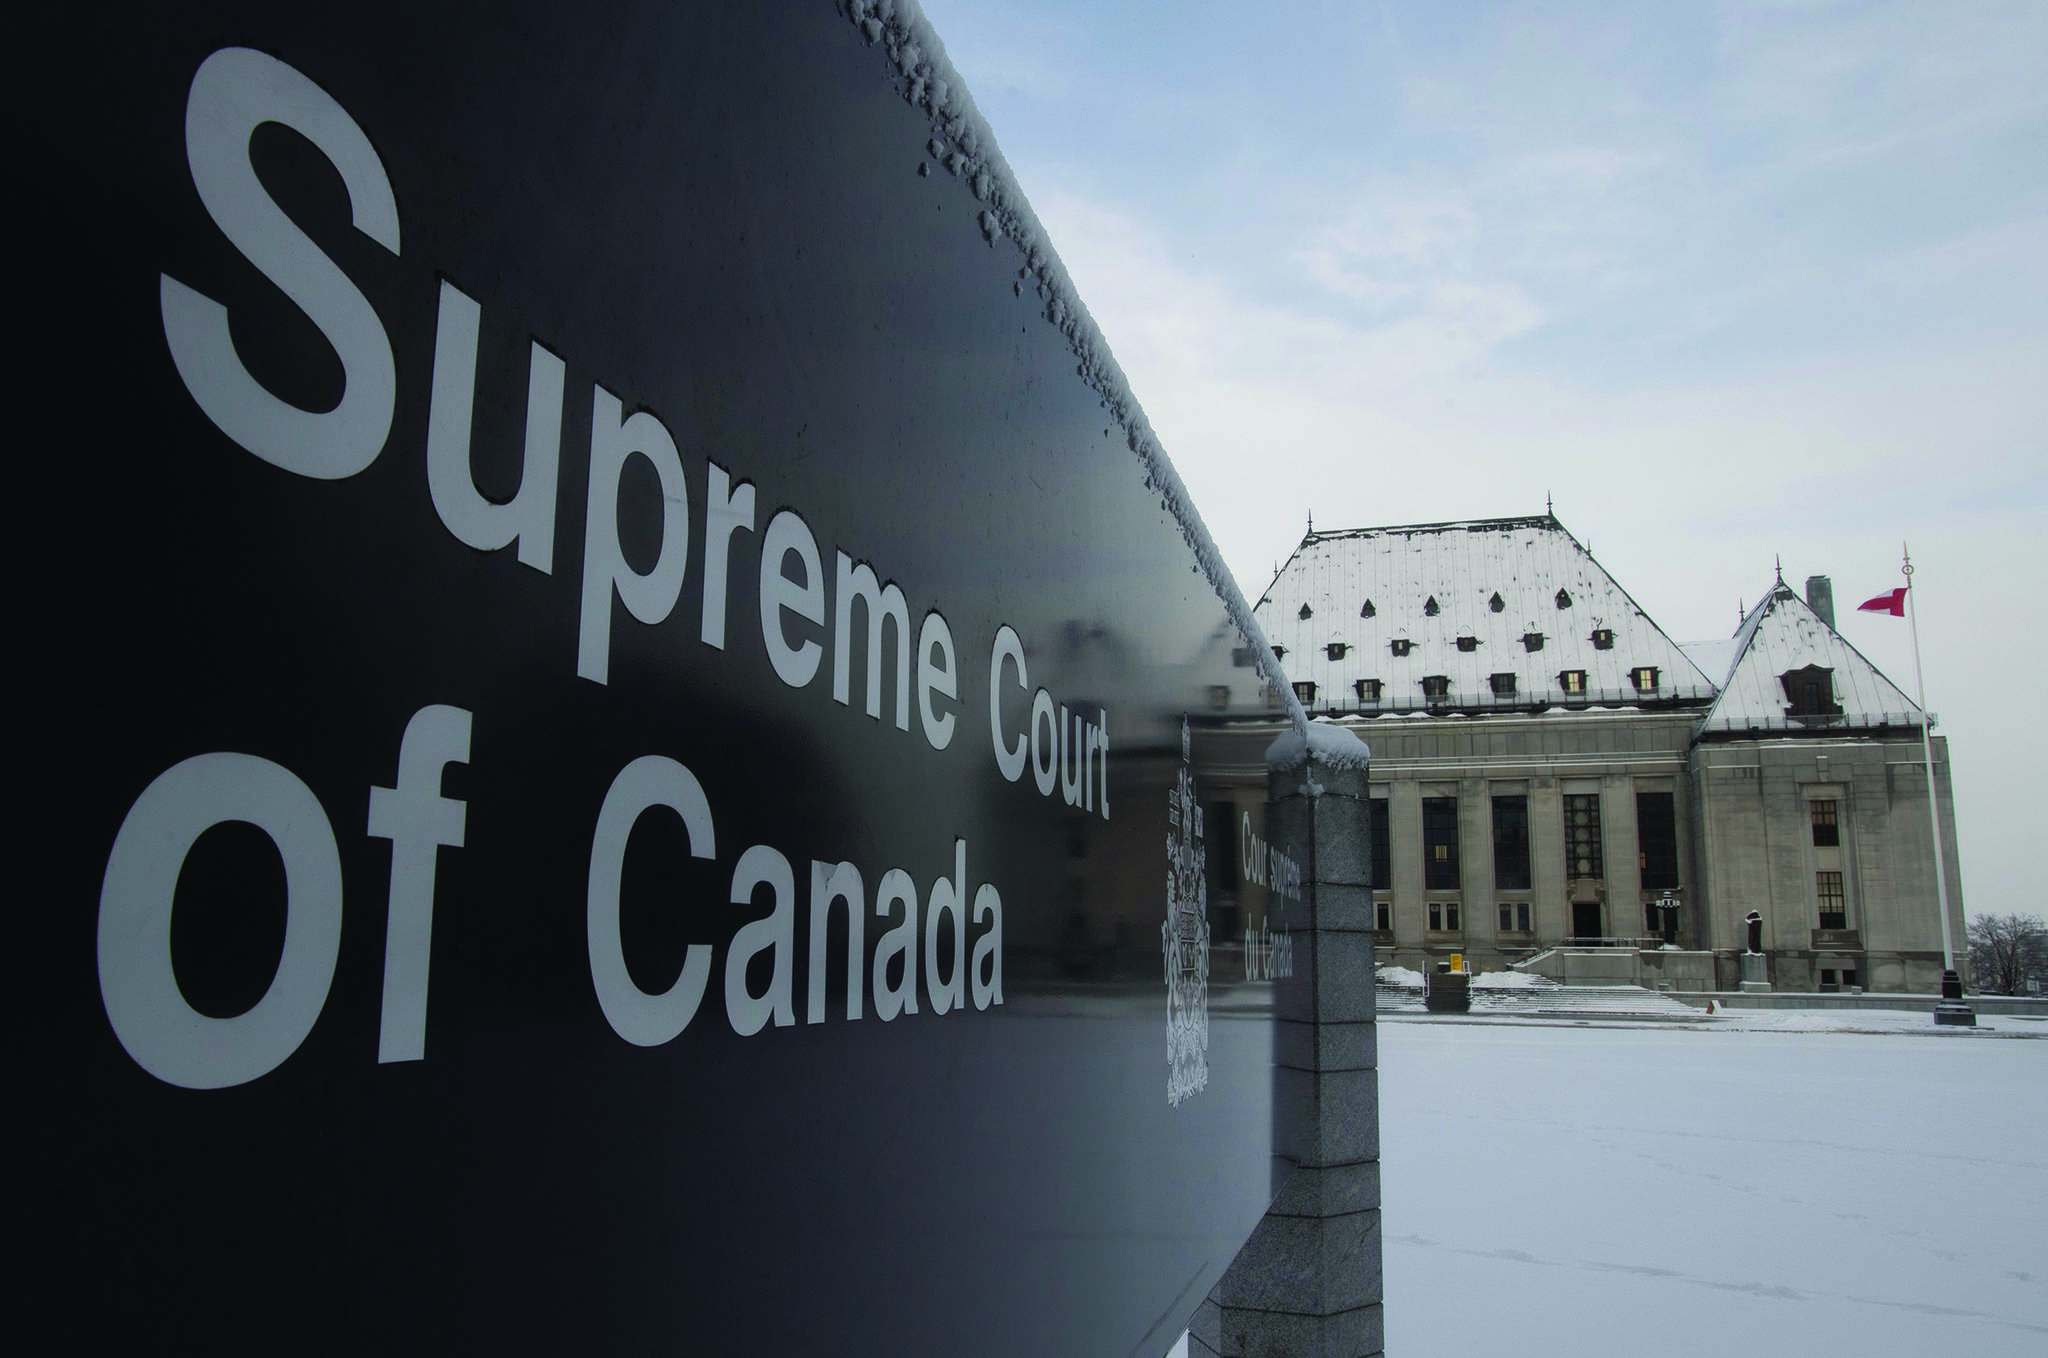 The Supreme Court of Canada is seen in Ottawa on January 16, 2020. THE CANADIAN PRESS/Adrian Wyld